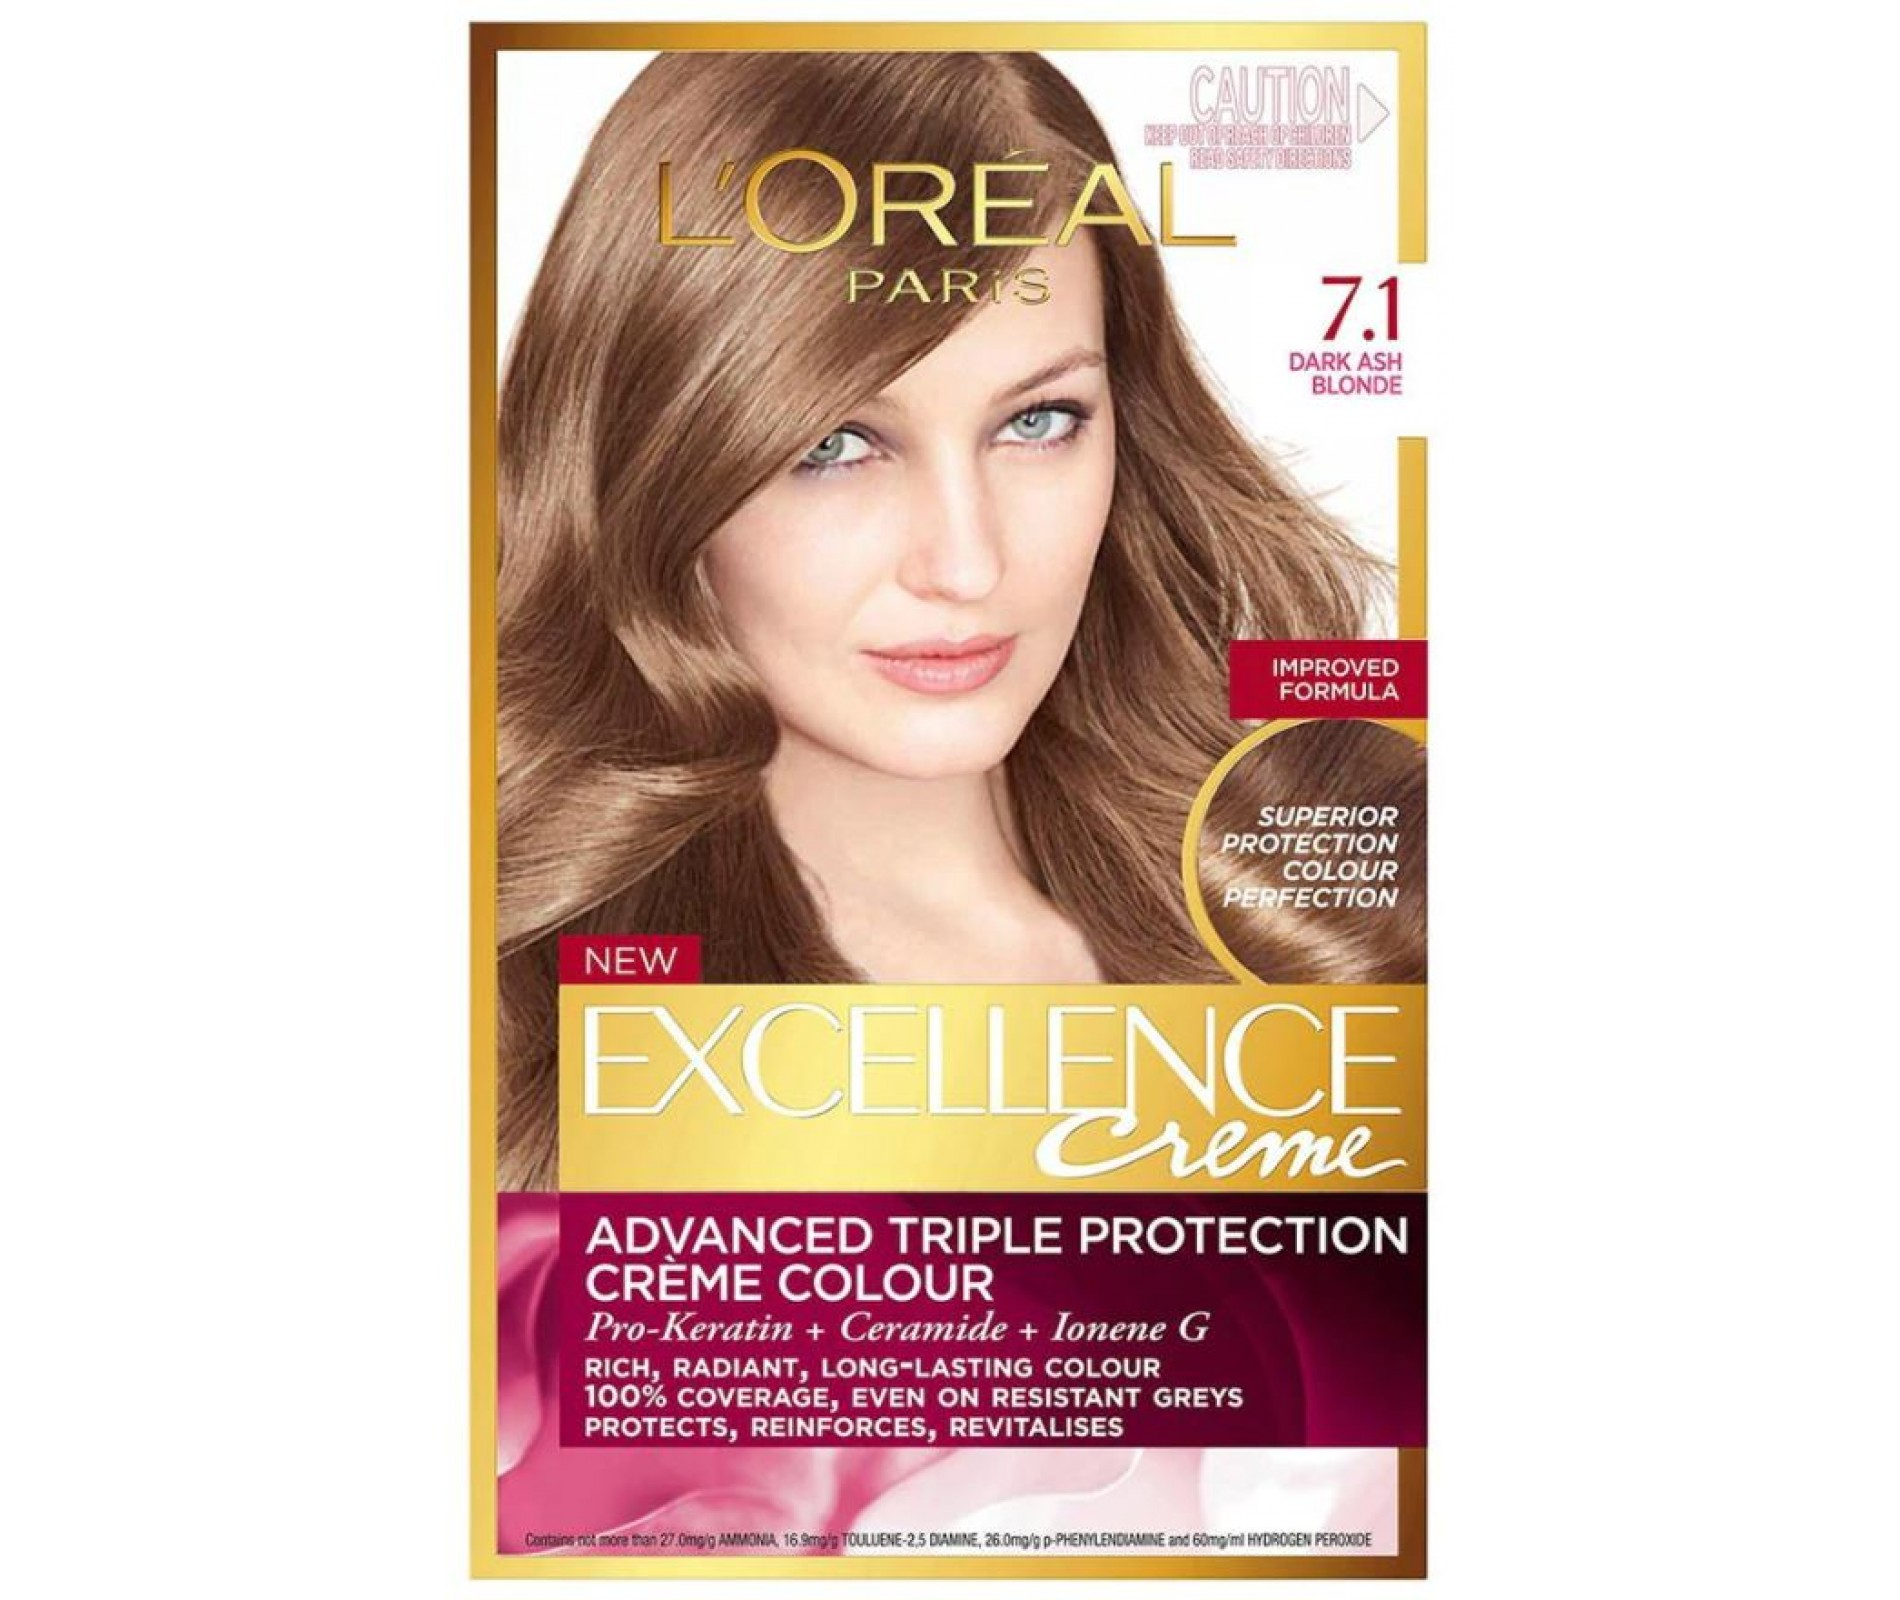 L'OREAL EXCELLENCE Боя за коса 7.1